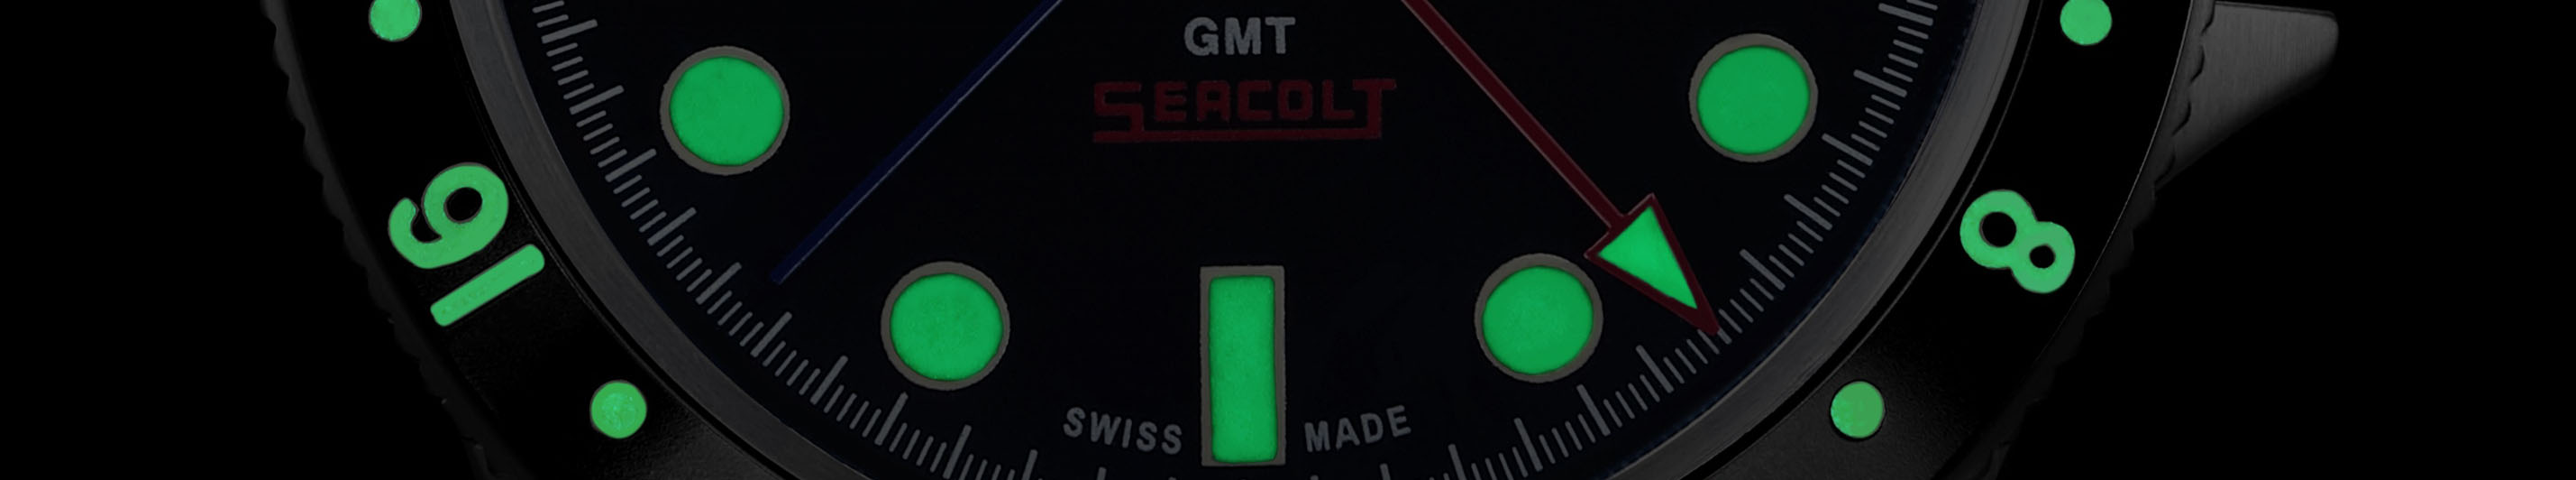 LeJour Seacolt GMT lume close up banner